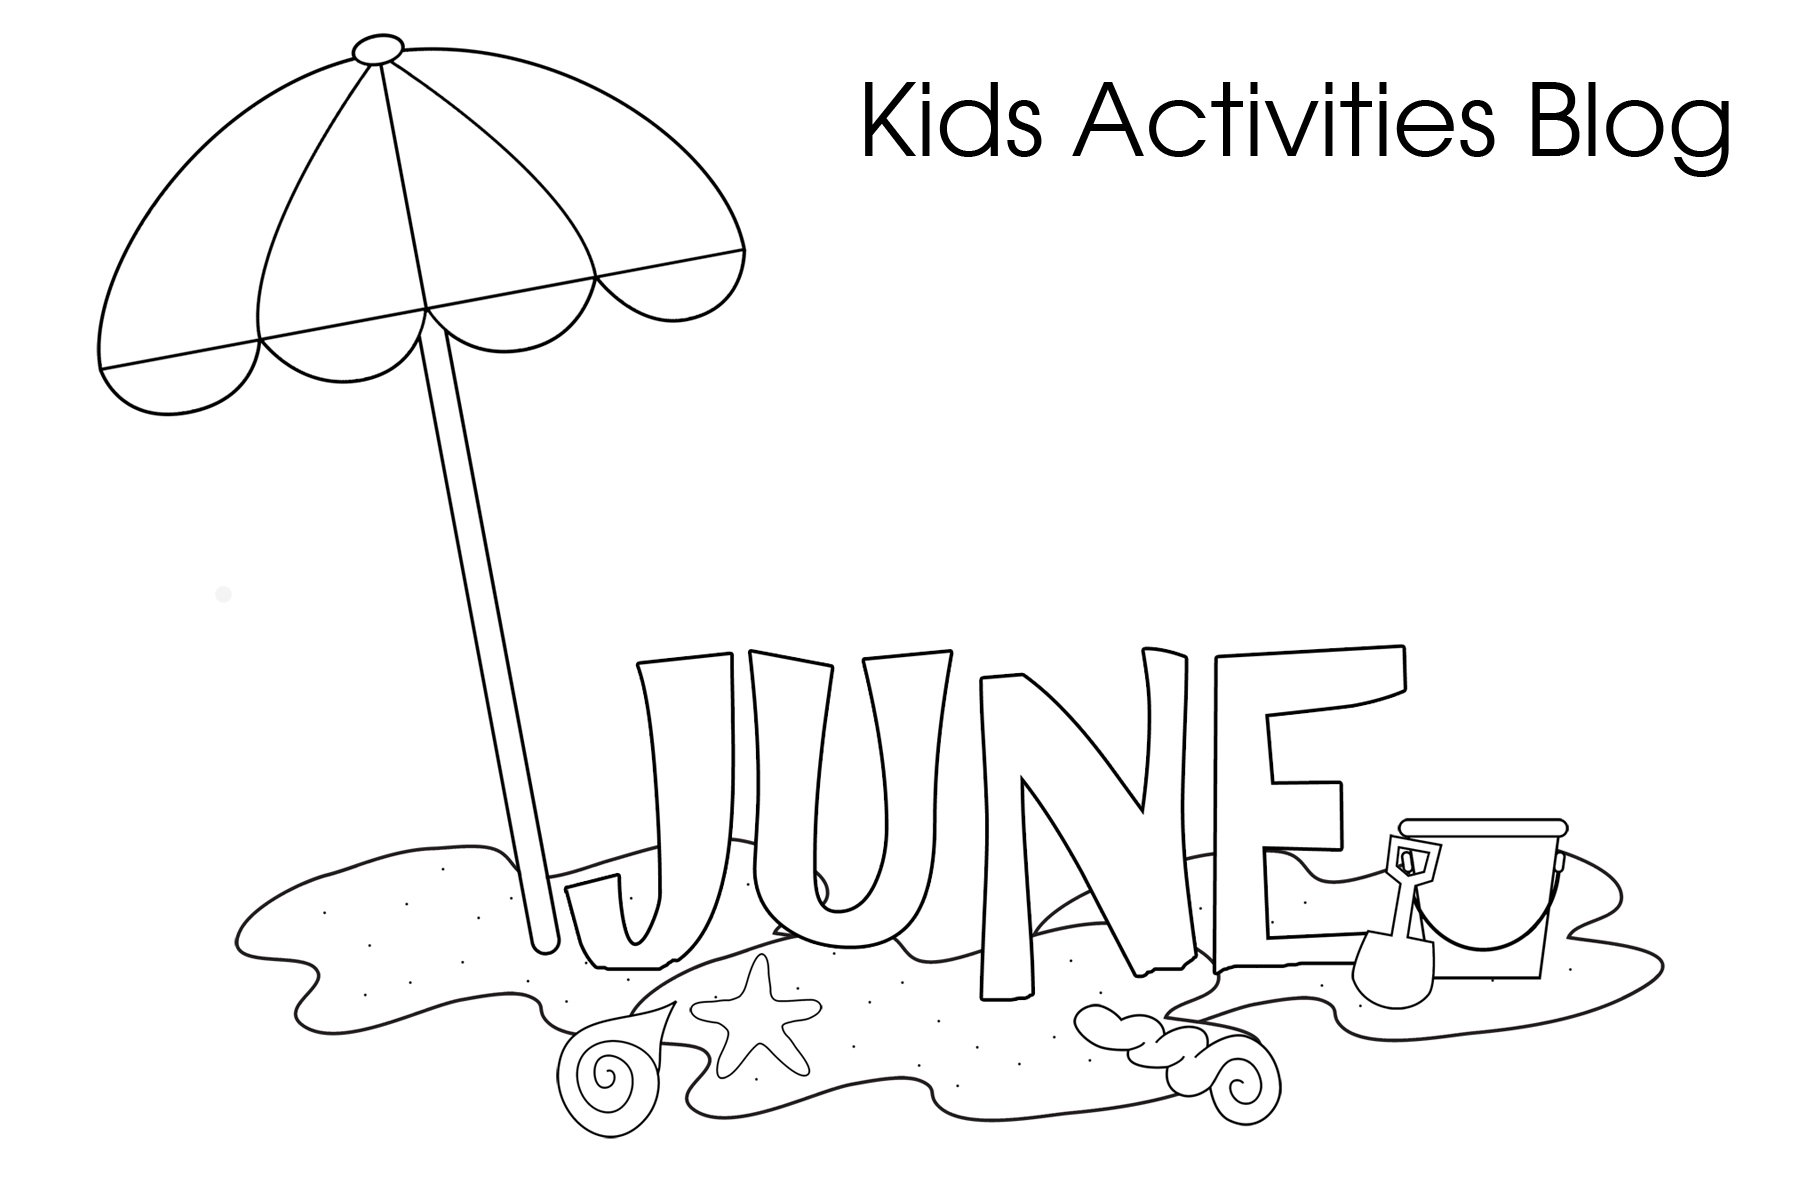 Free coloring pages for june - Free Coloring Pages For June 0